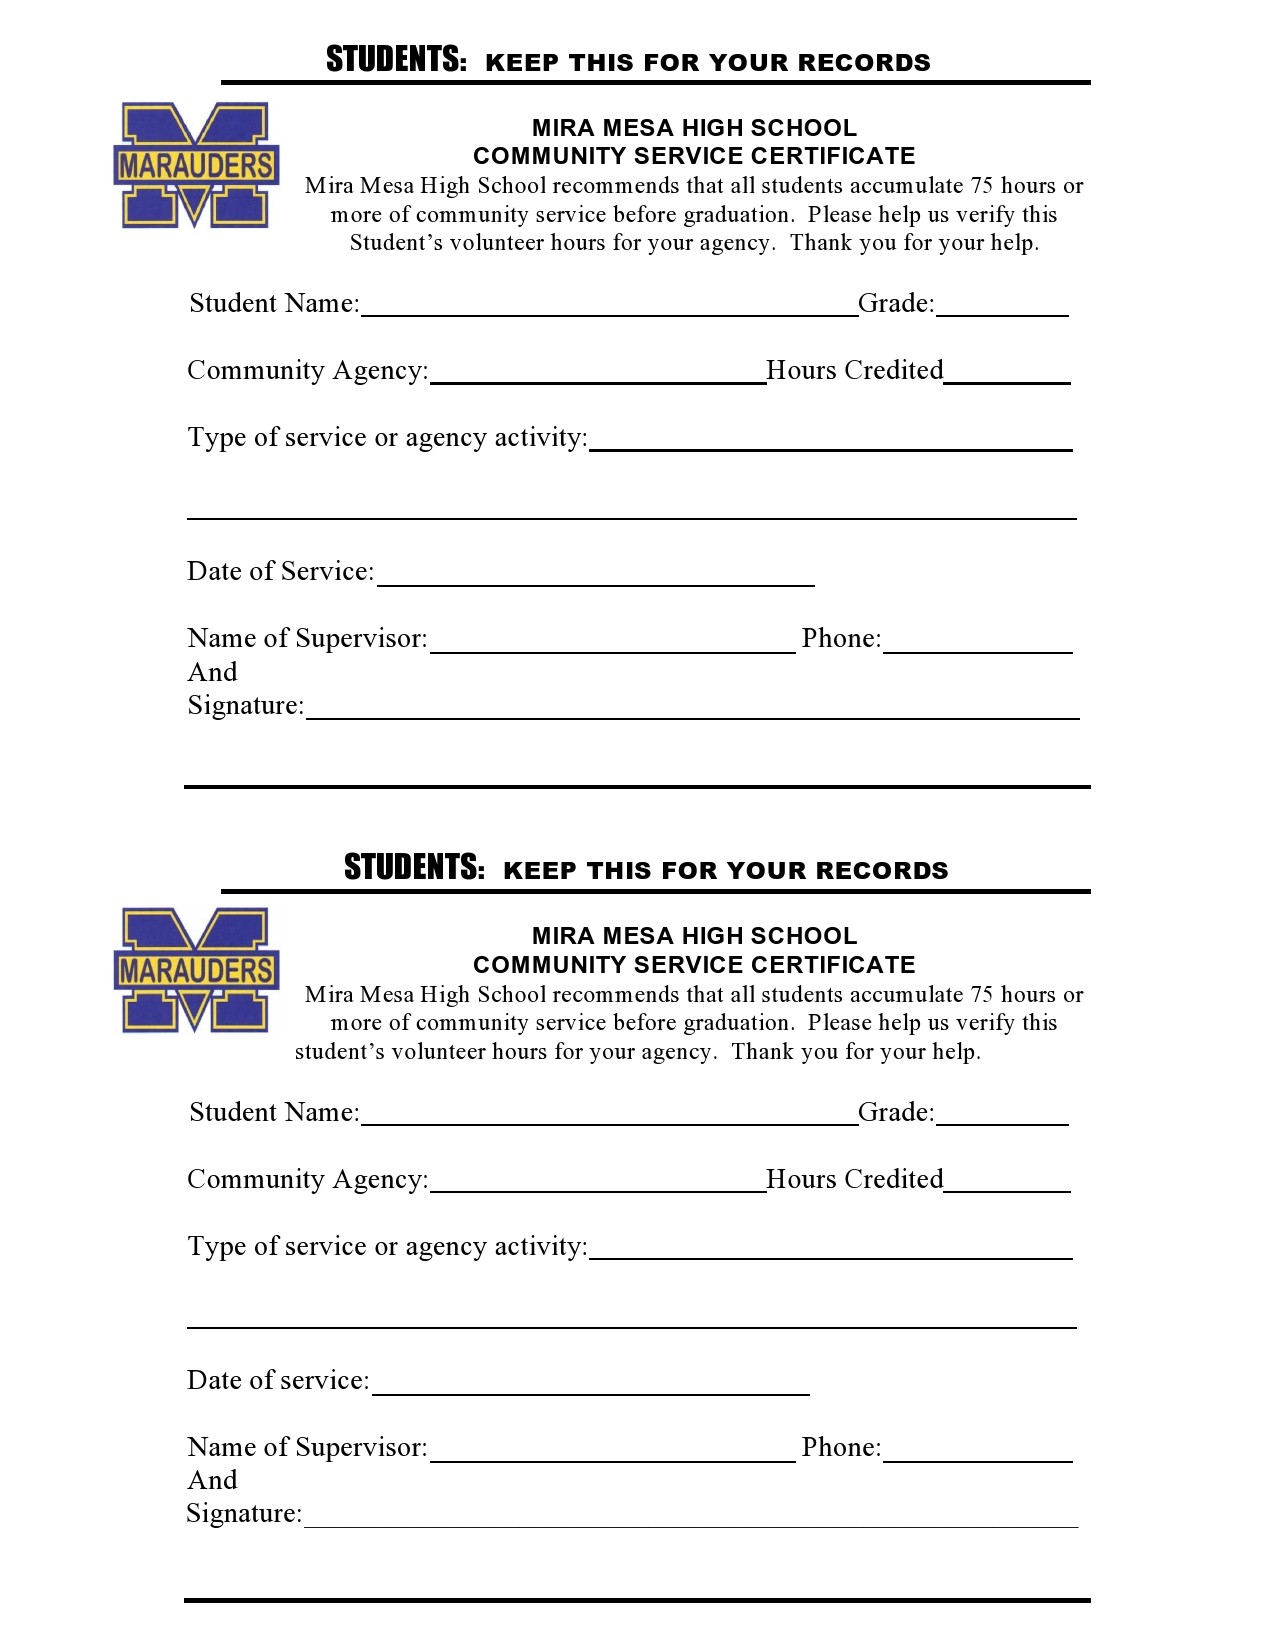 Free community service form 37